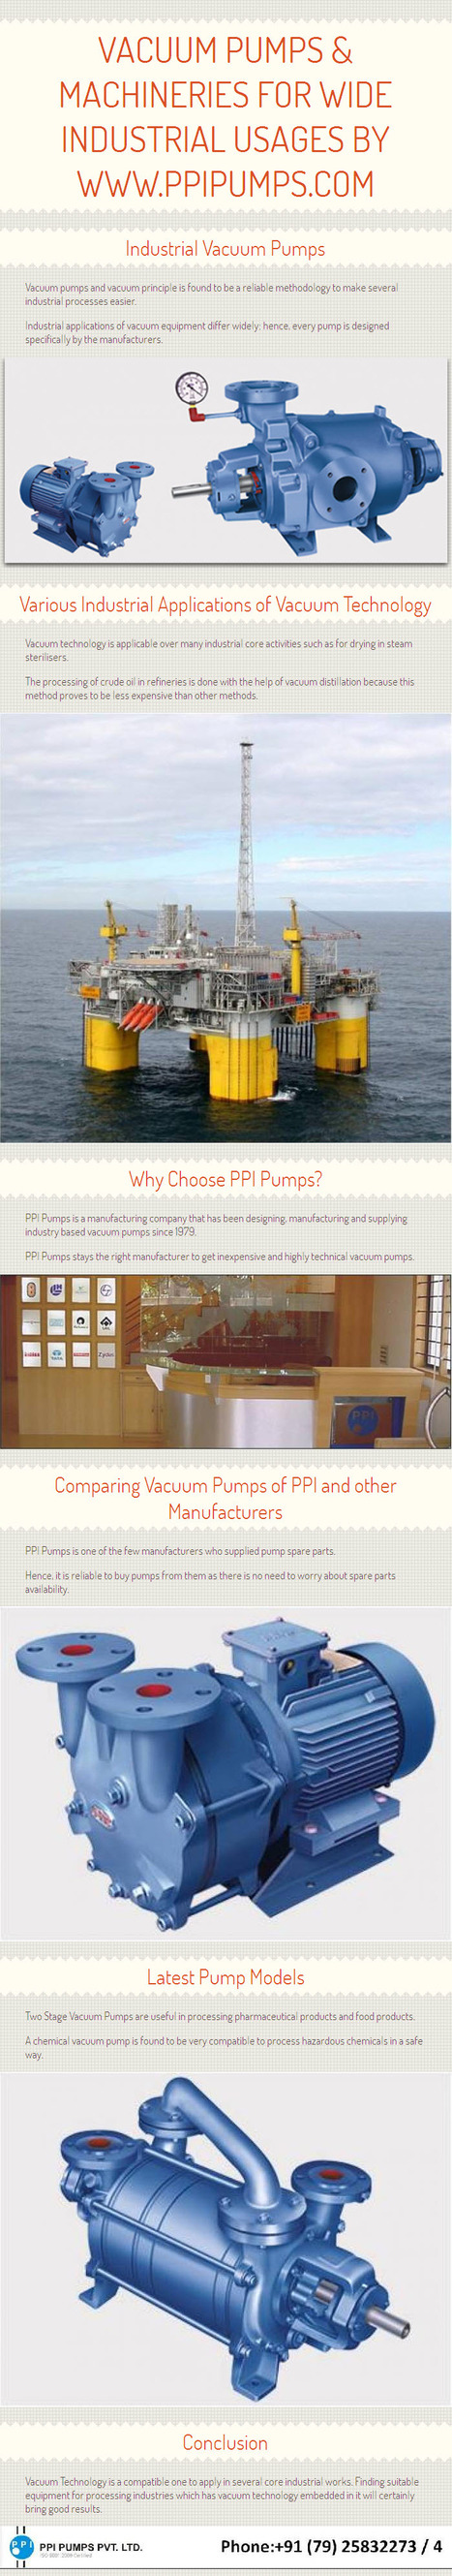 Vacuum Pumps & Machineries for Wide Industrial Usages by www.ppipumps.com | PPI Pumps Pvt. Ltd. | Scoop.it